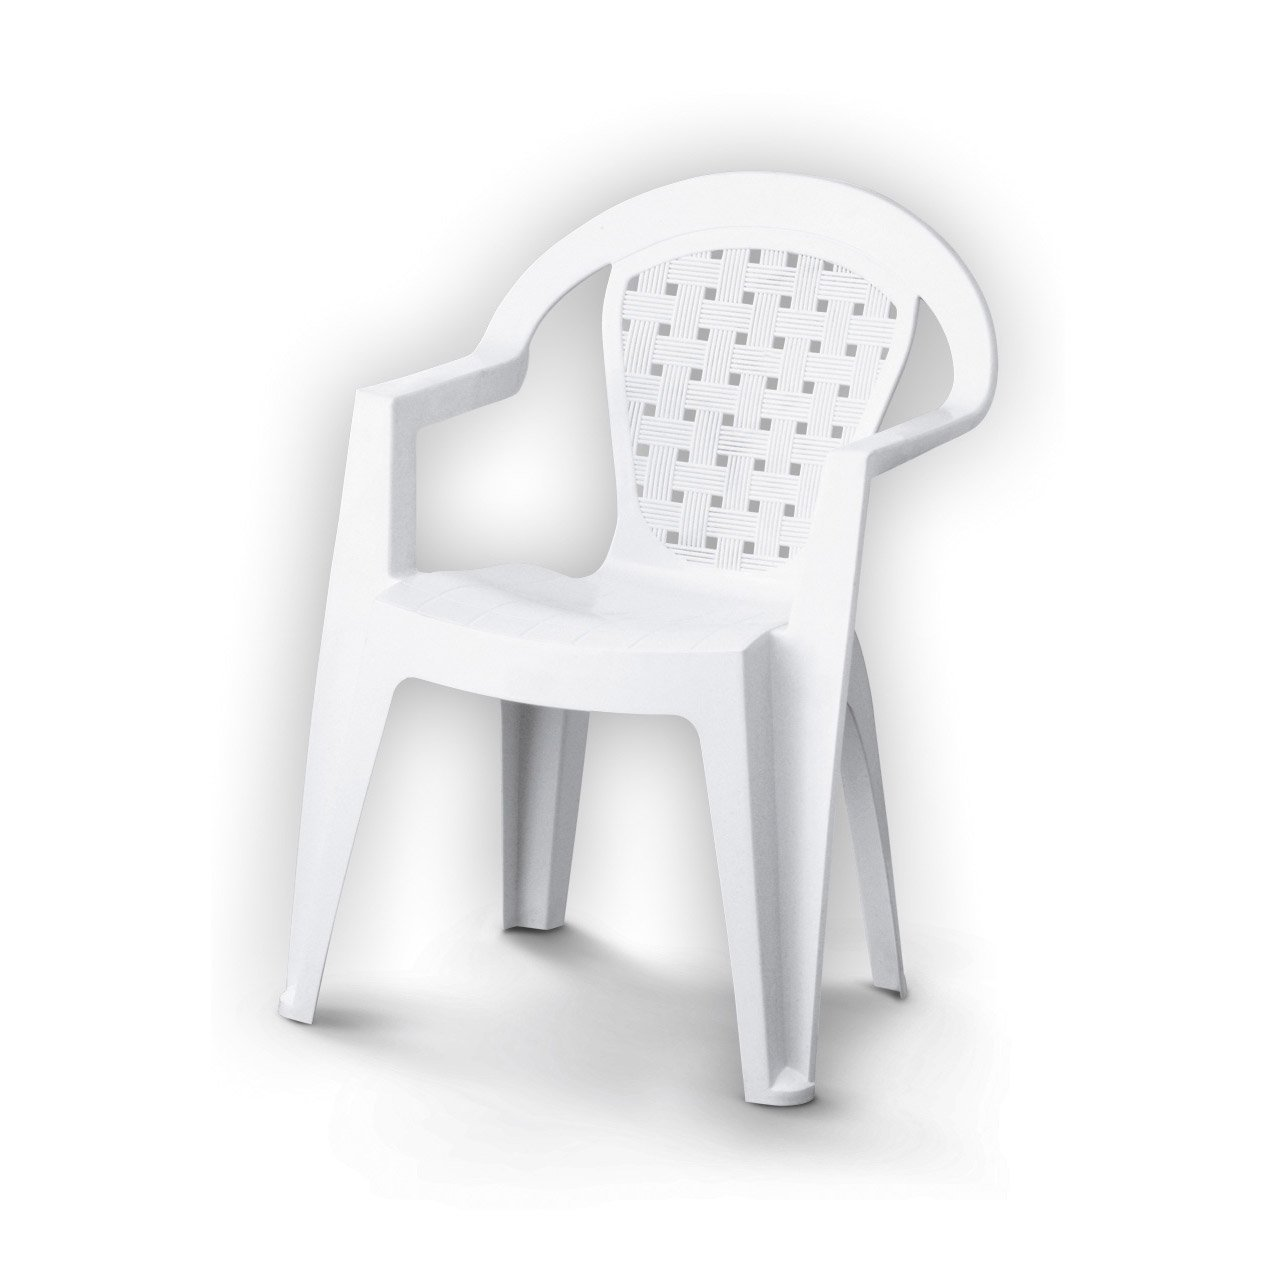 Chaise plastique blanche design id es de d coration - Chaise plastique design ...